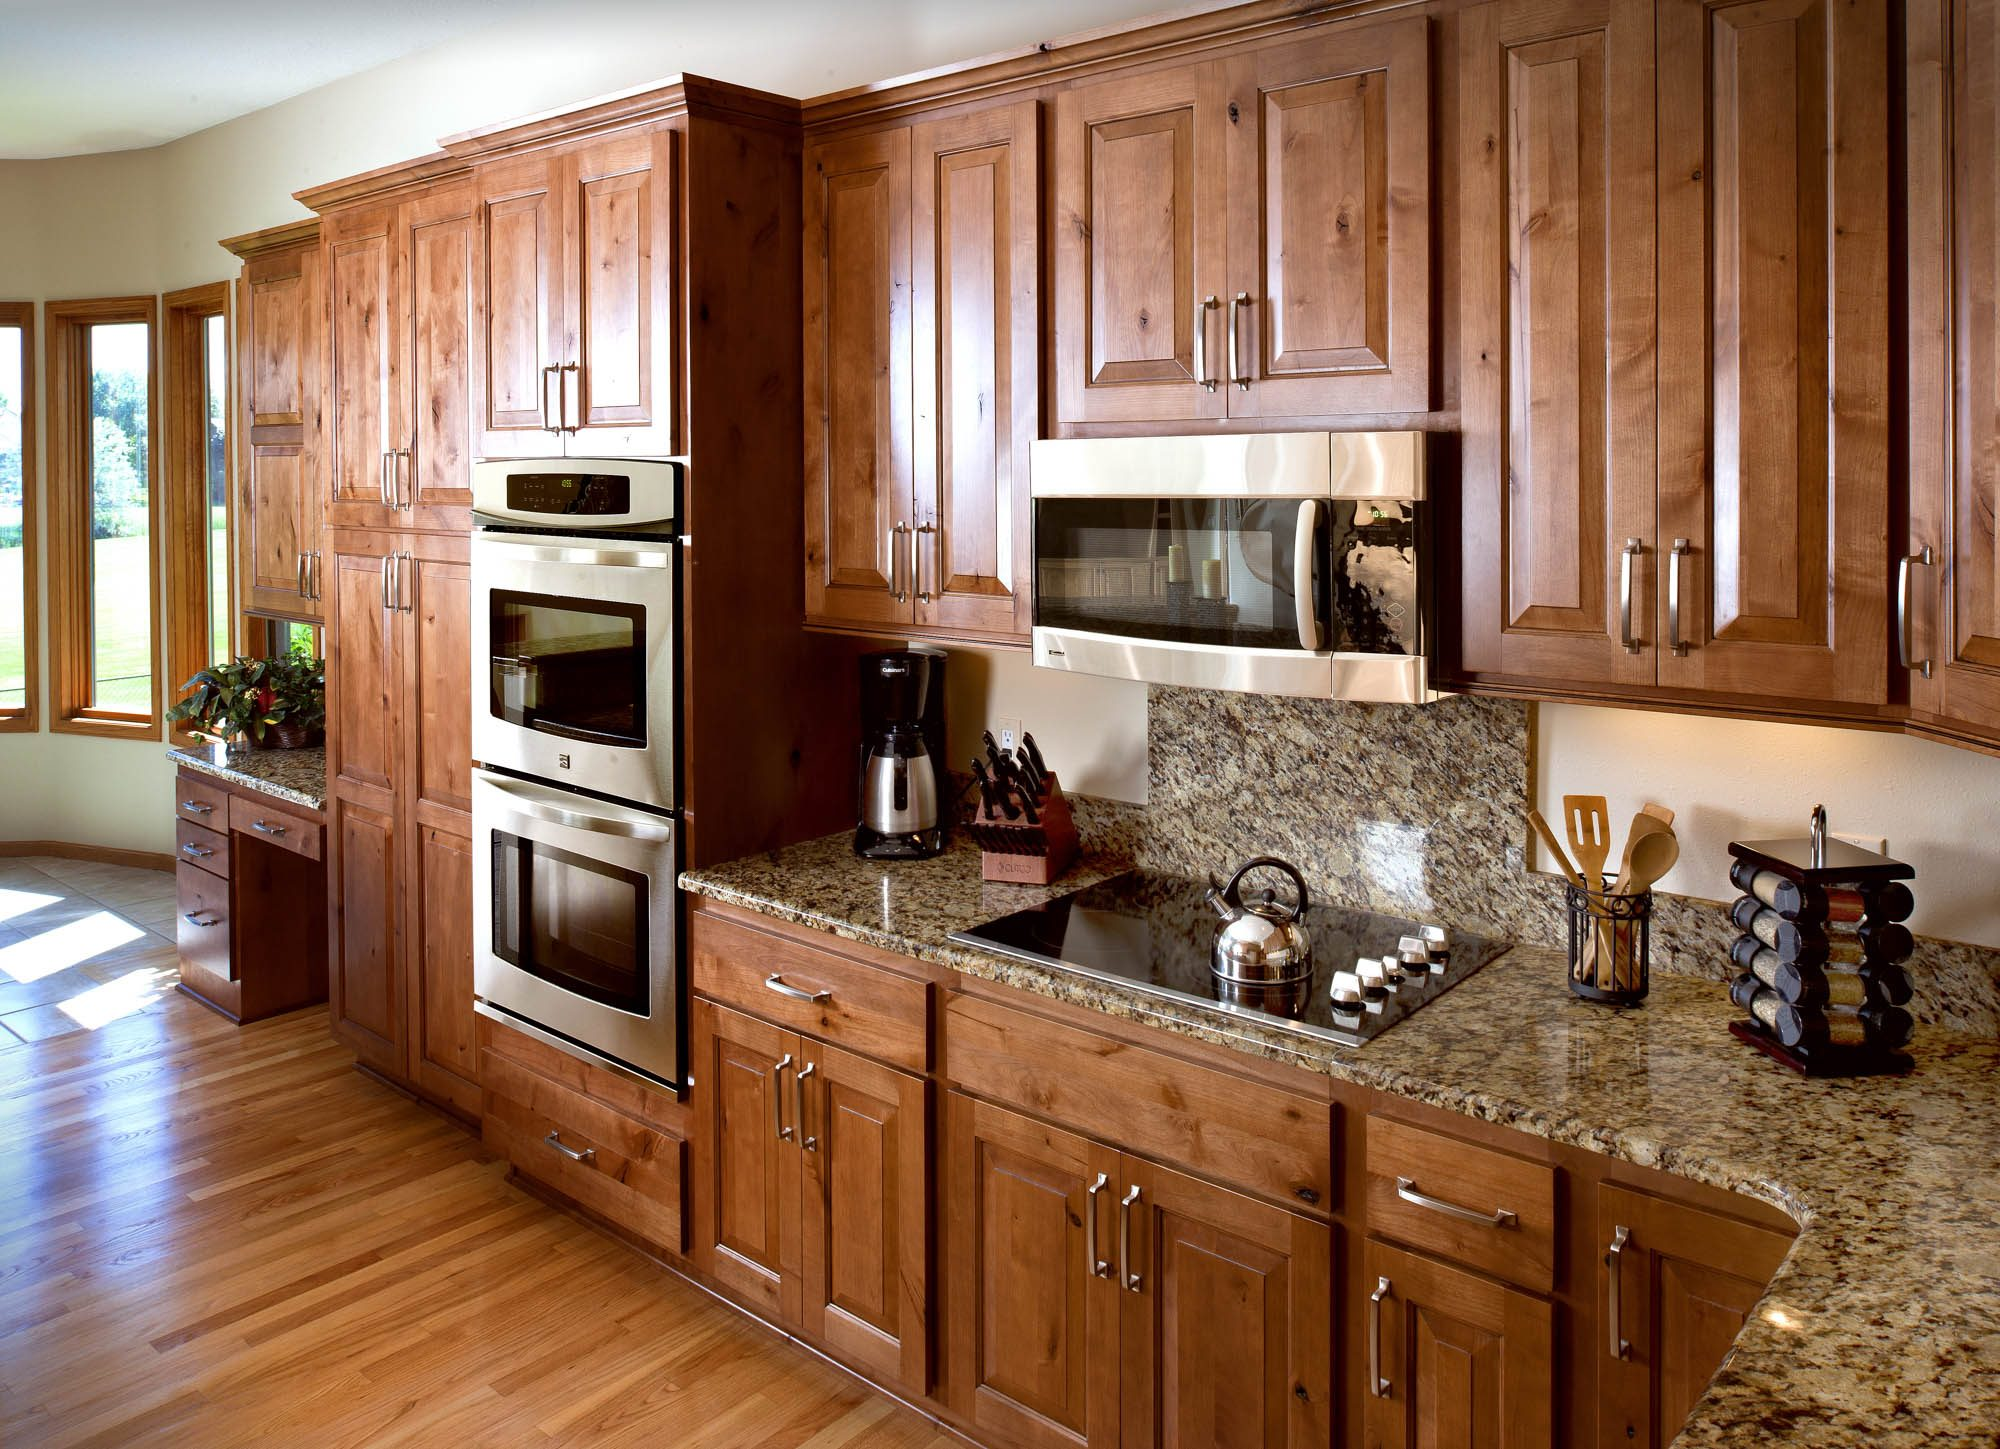 Renew | Stained Kitchen Cabinets In Nutmeg With Ebony Glaze By Showplace  Cabinetry   View 2